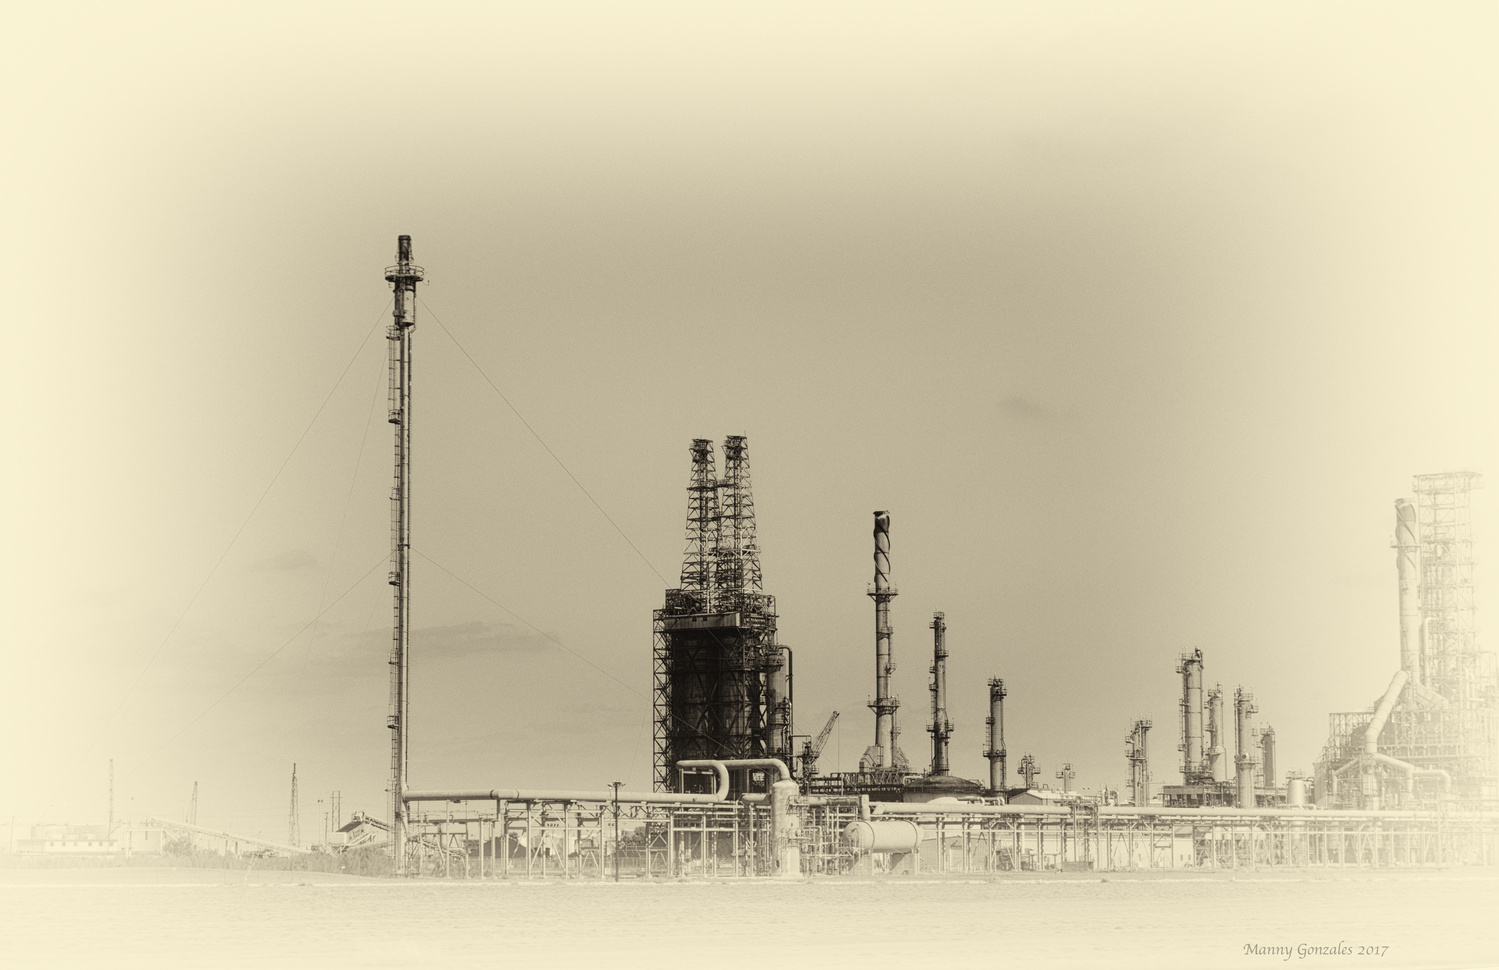 Refinery by Manny Gonzales